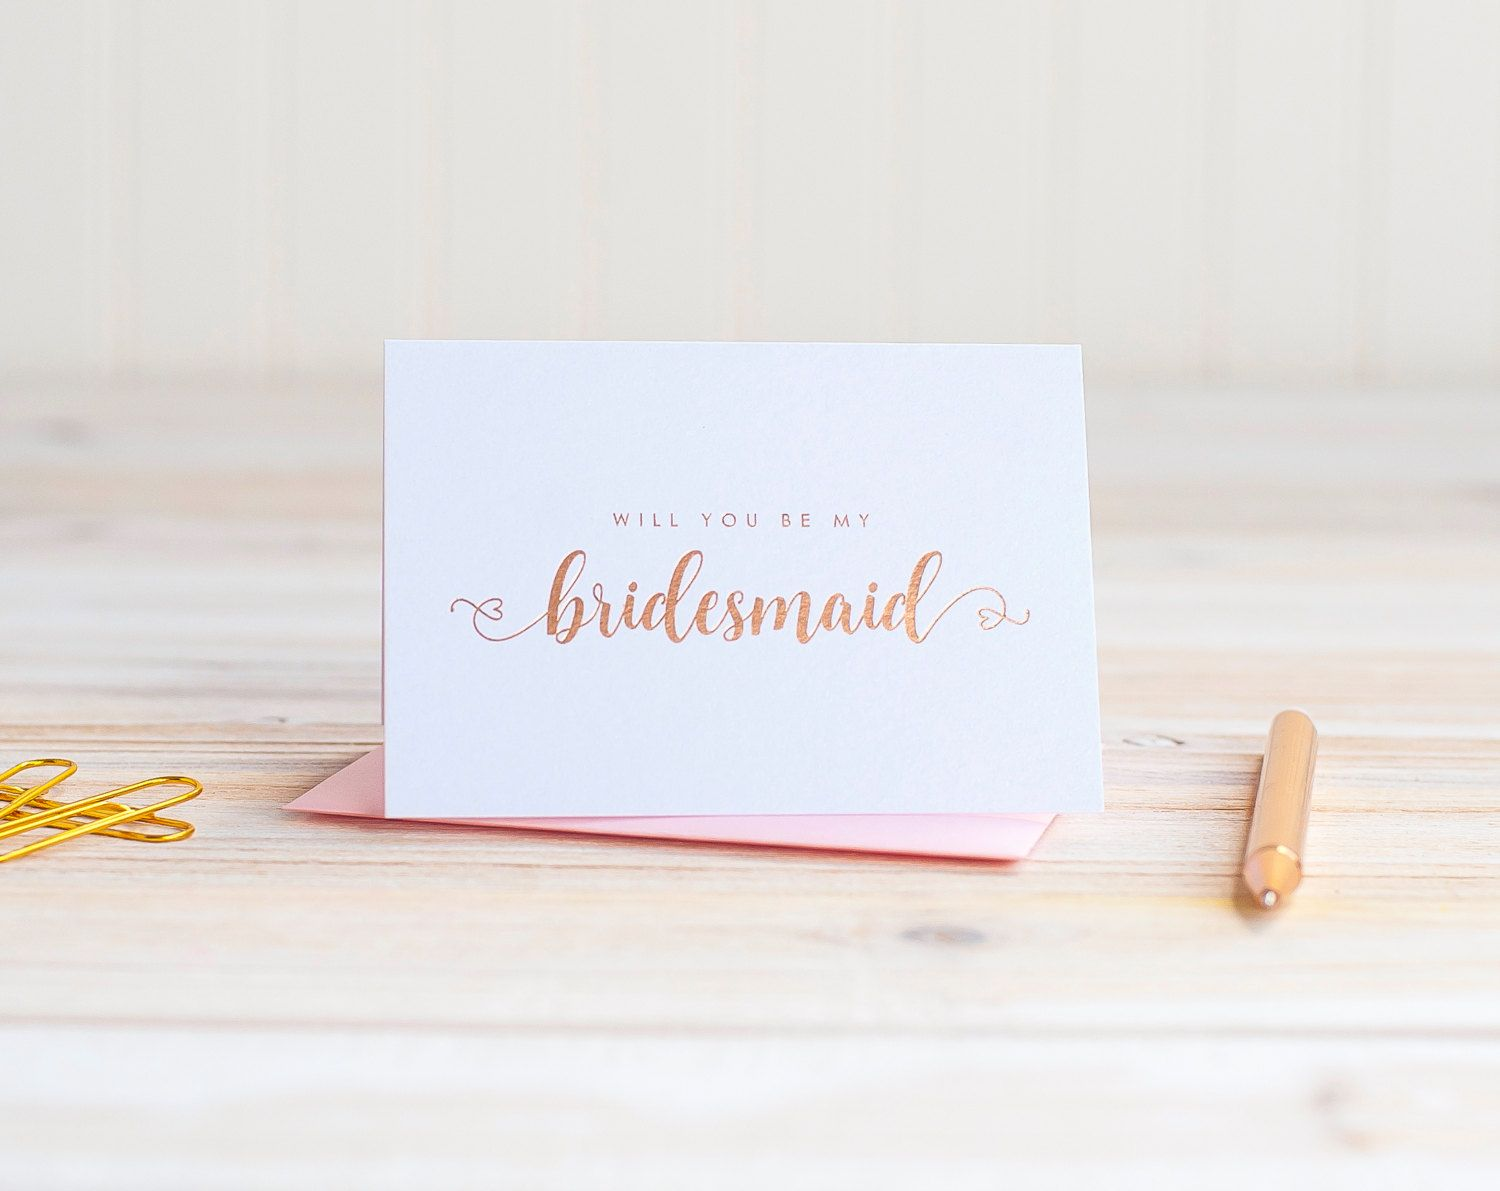 Will You Be My Bridesmaid Card Rose Gold Foil Ask Proposal Gift Box Wedding Party